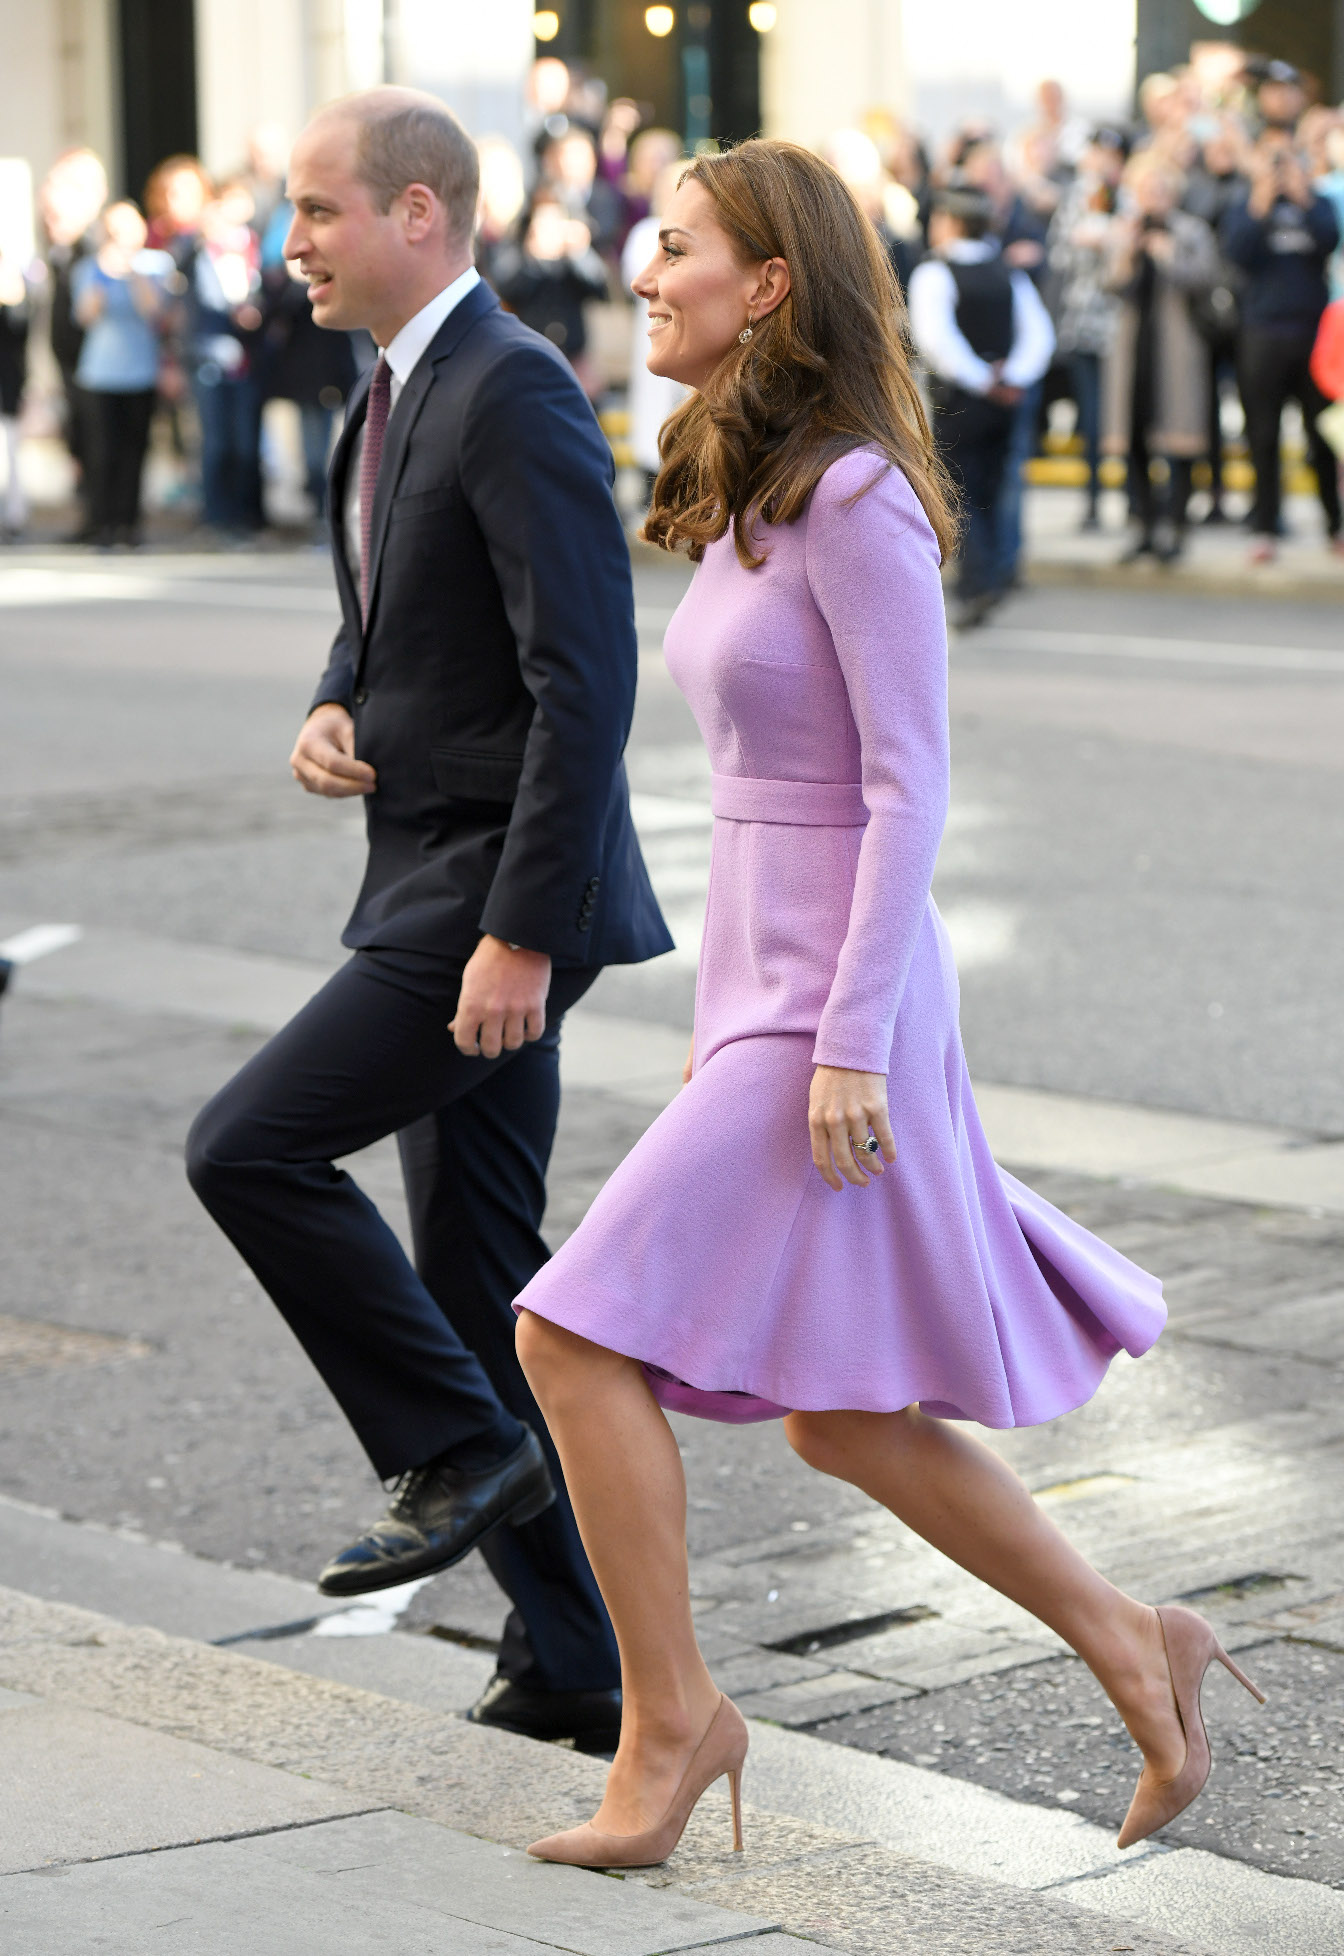 LONDON, ENGLAND - OCTOBER 09:  Prince William, Duke of Cambridge and Catherine, Duchess of Cambridge attend the Global Ministerial Mental Health Summit at London County Hall on October 9, 2018 in London, England.  (Photo by Karwai Tang/WireImage)